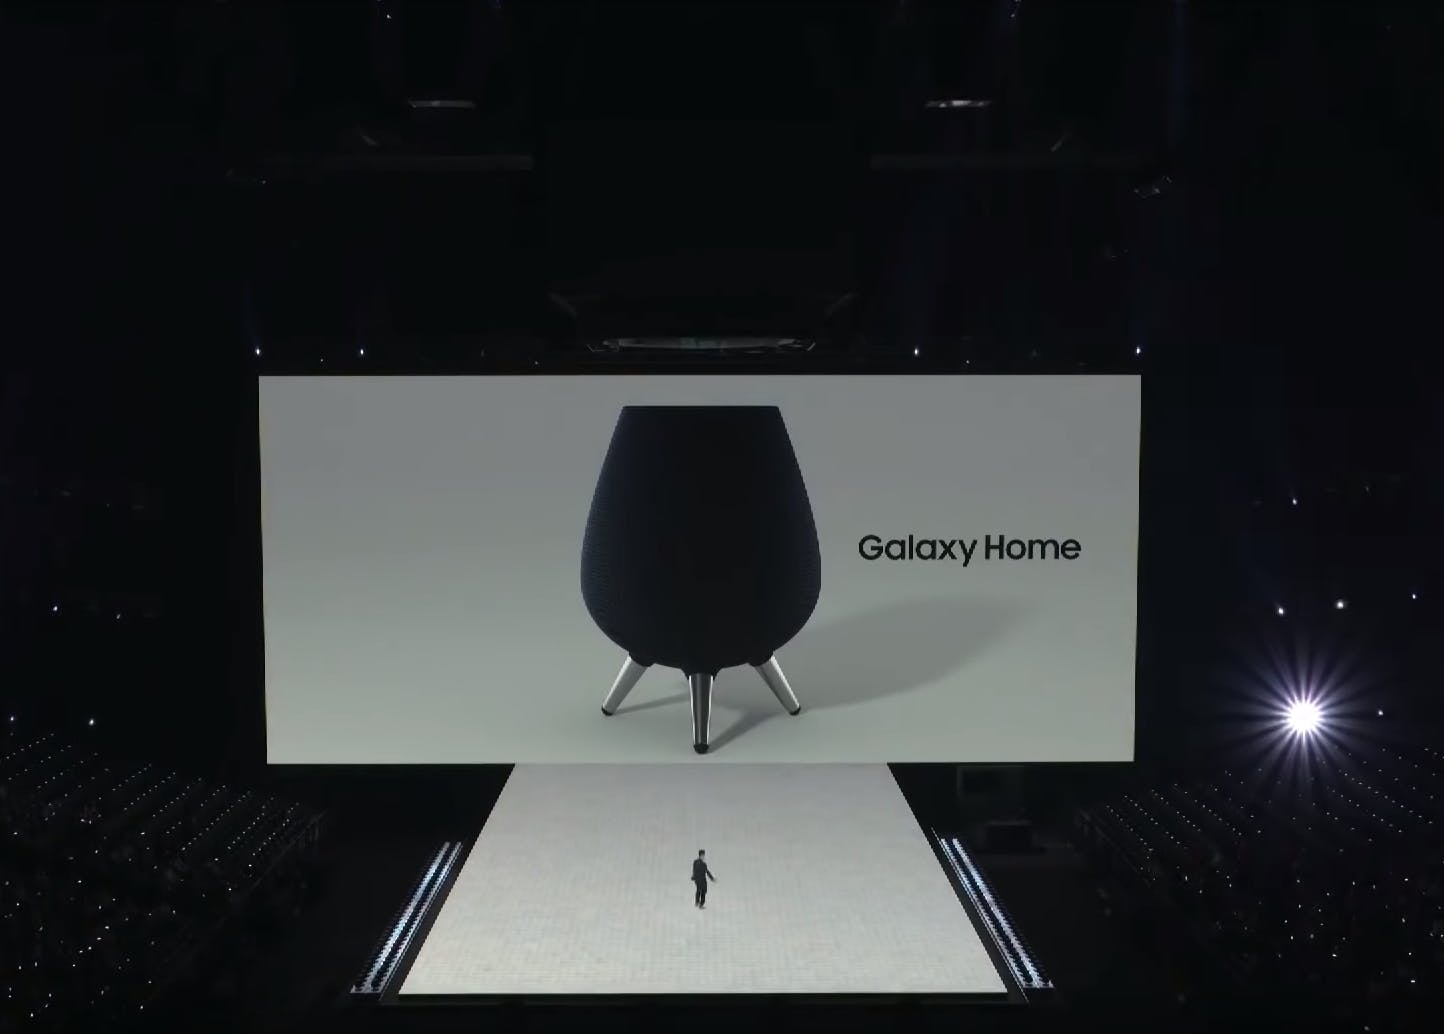 Galaxy Home unveiling. Samsung Unpacked Event 2018.